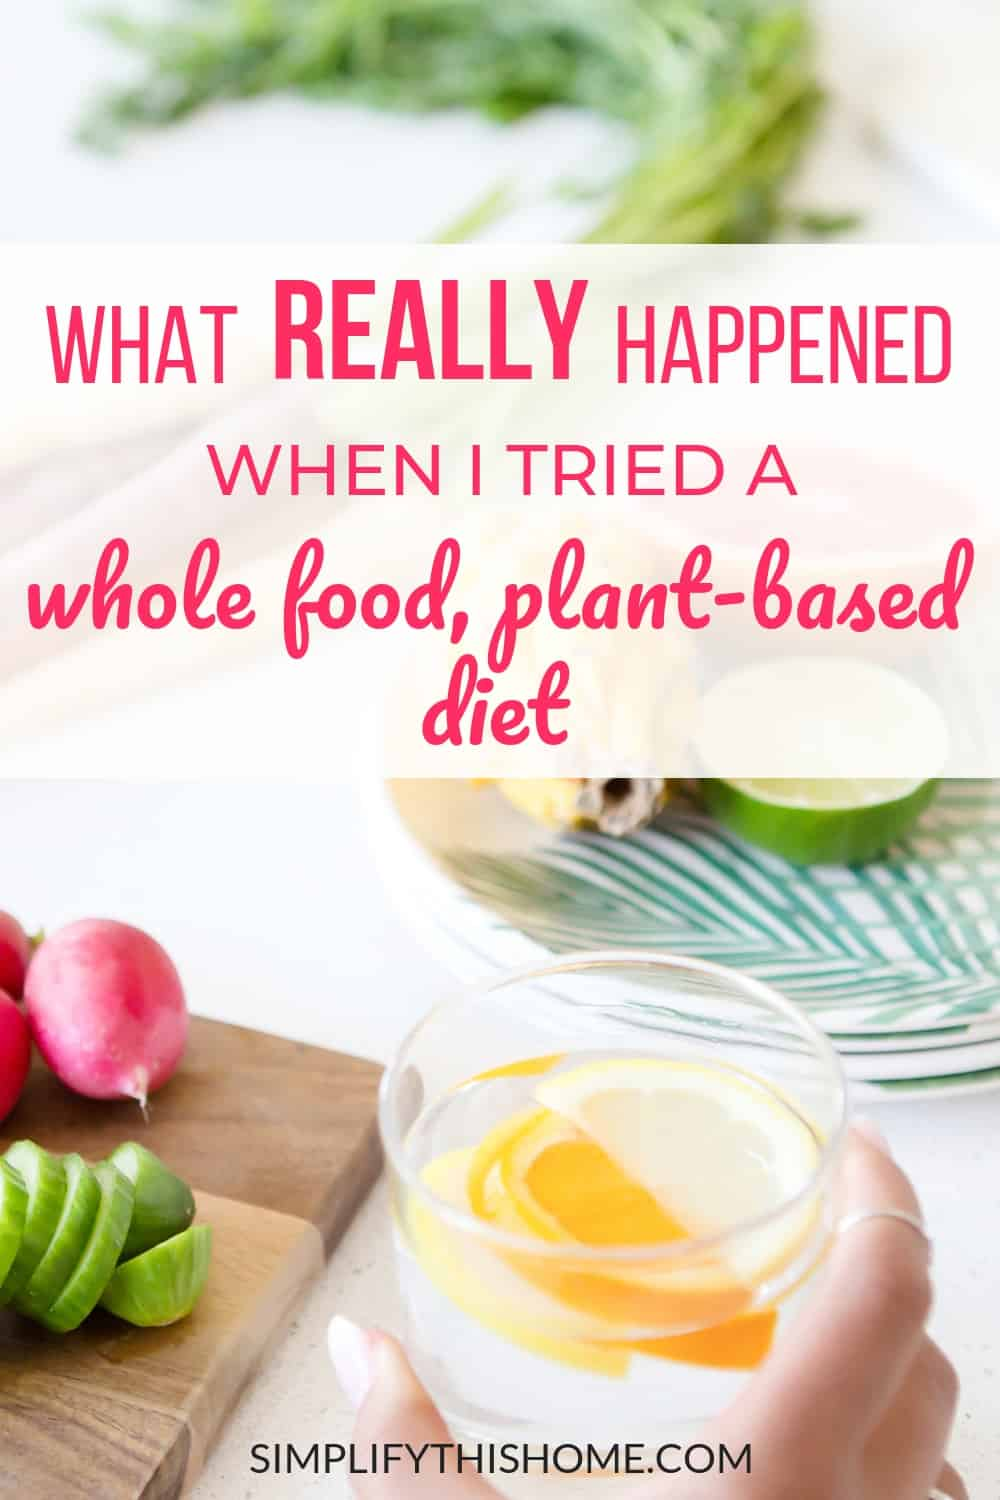 I tried a whole food, plant-based diet for a month to see what would happen. My results just might surprise you! And if my health improvements aren't impressive enough, wait until you see what happened to my husband when he went plant-based!